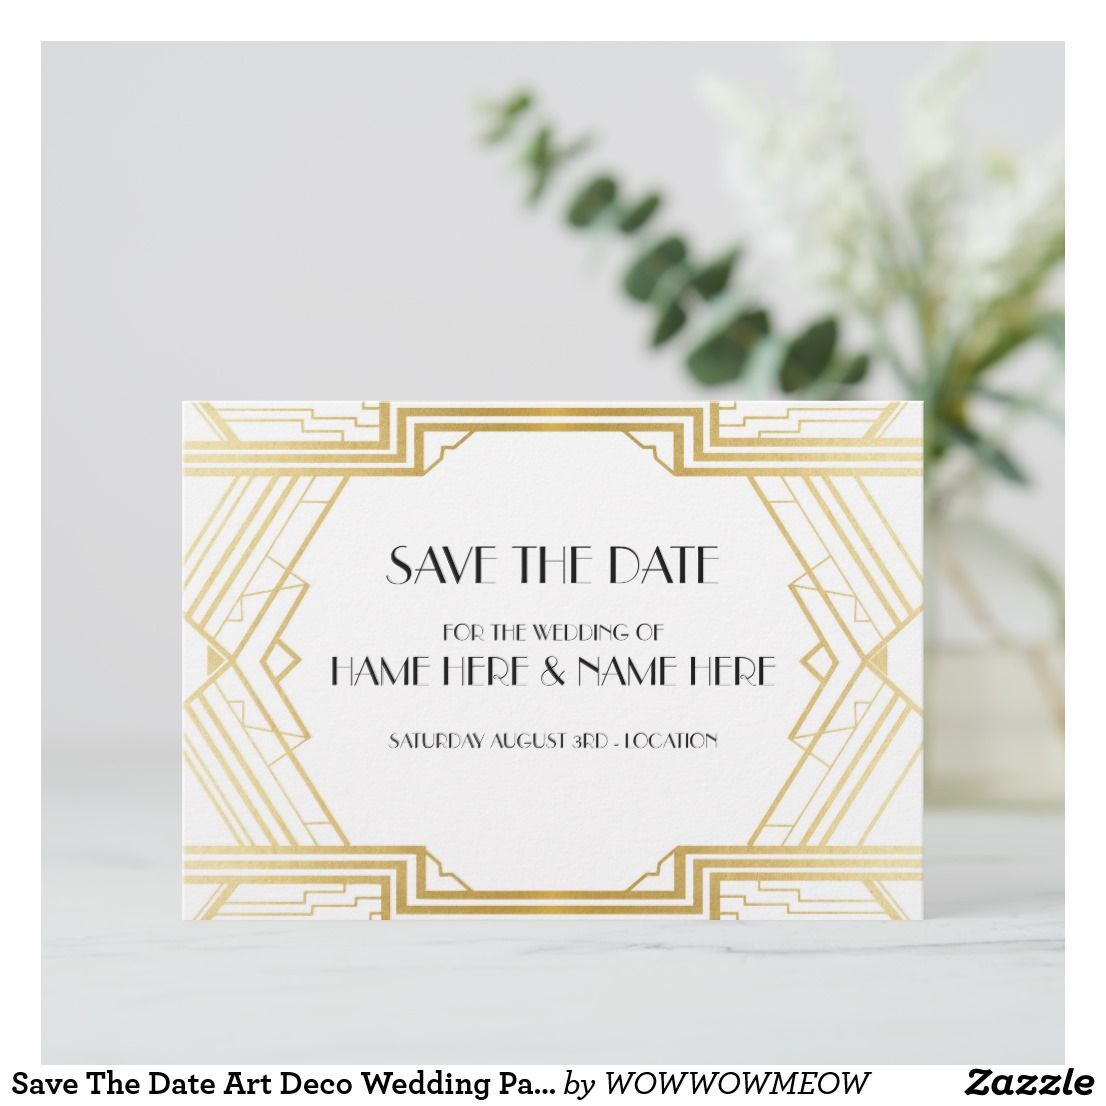 save the date art deco wedding party gold invites in 2018 wedding